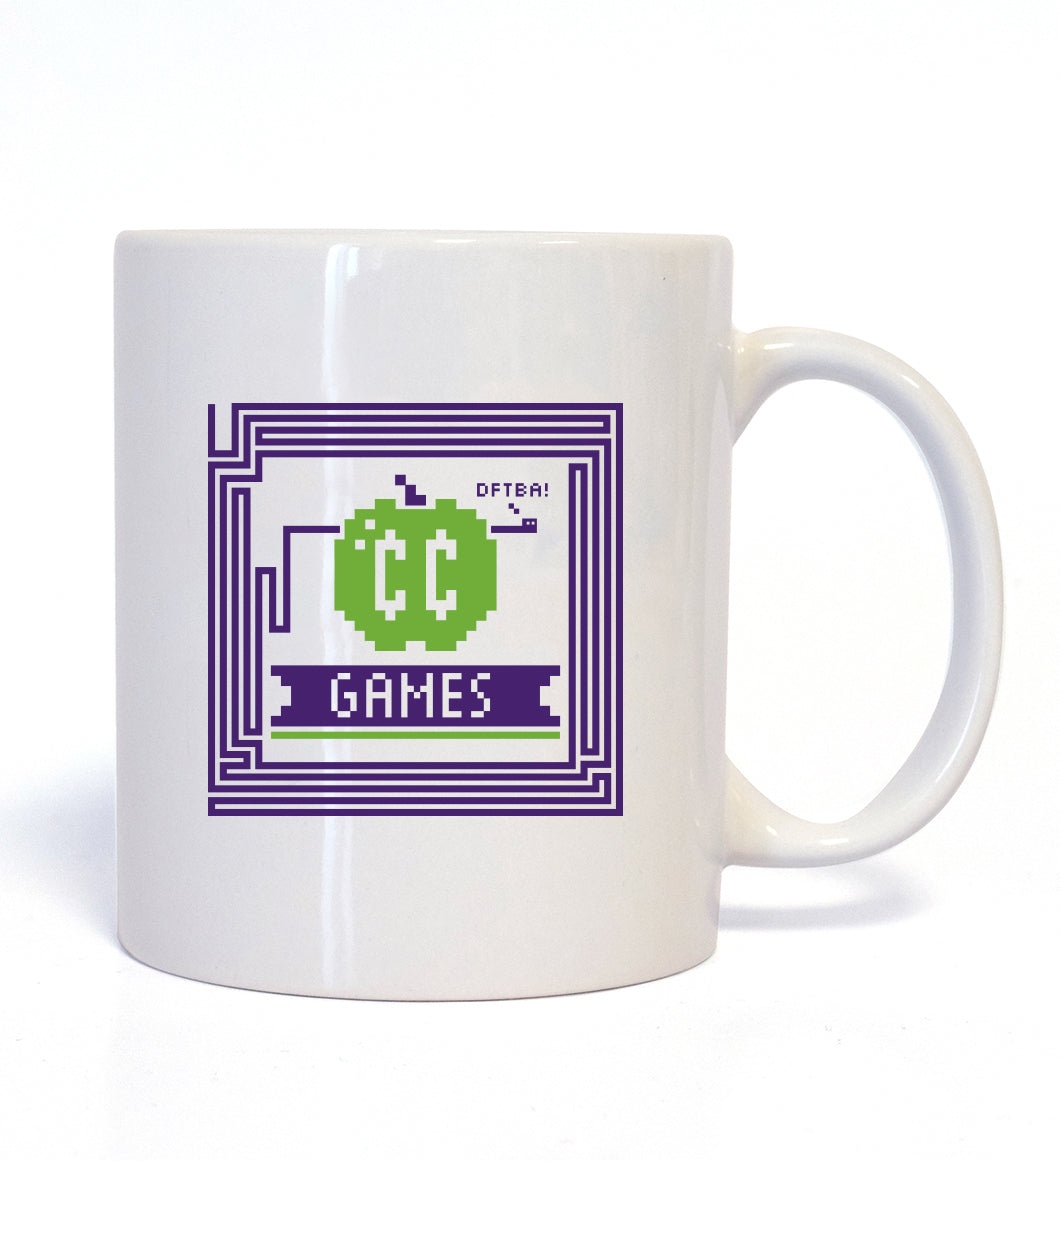 CrashCourse Games Mug